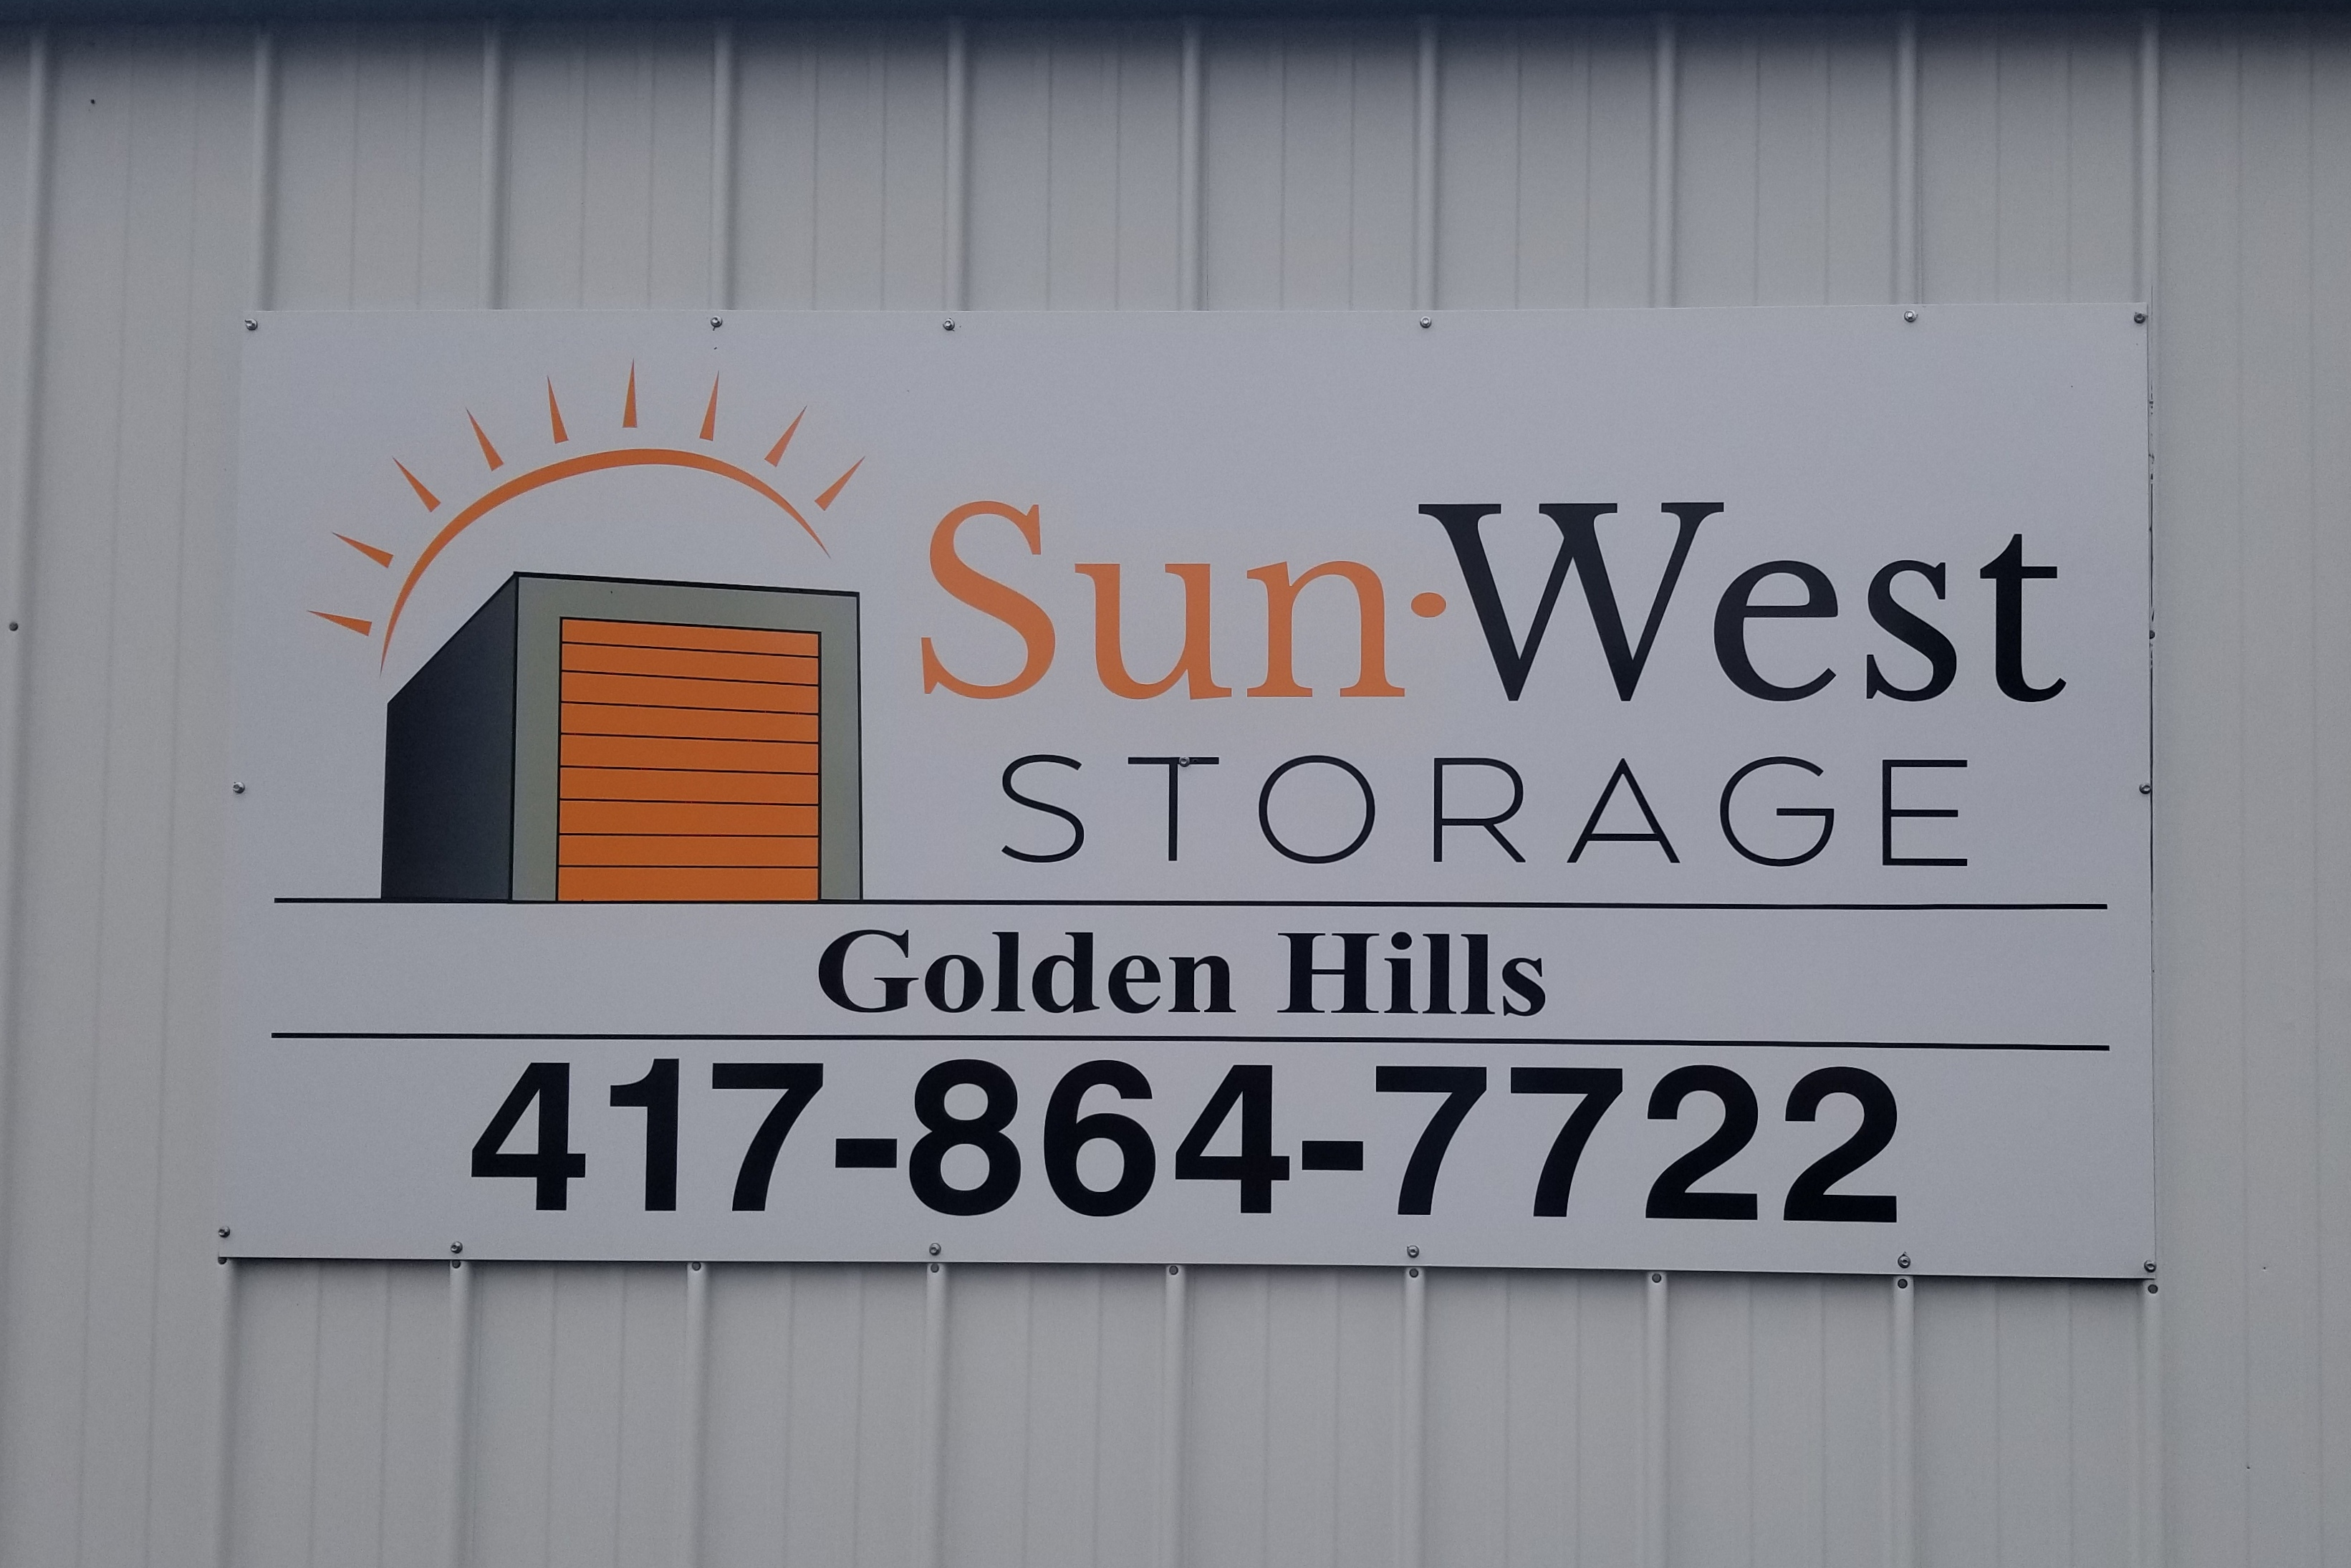 SunWest Storage - Golden Hills